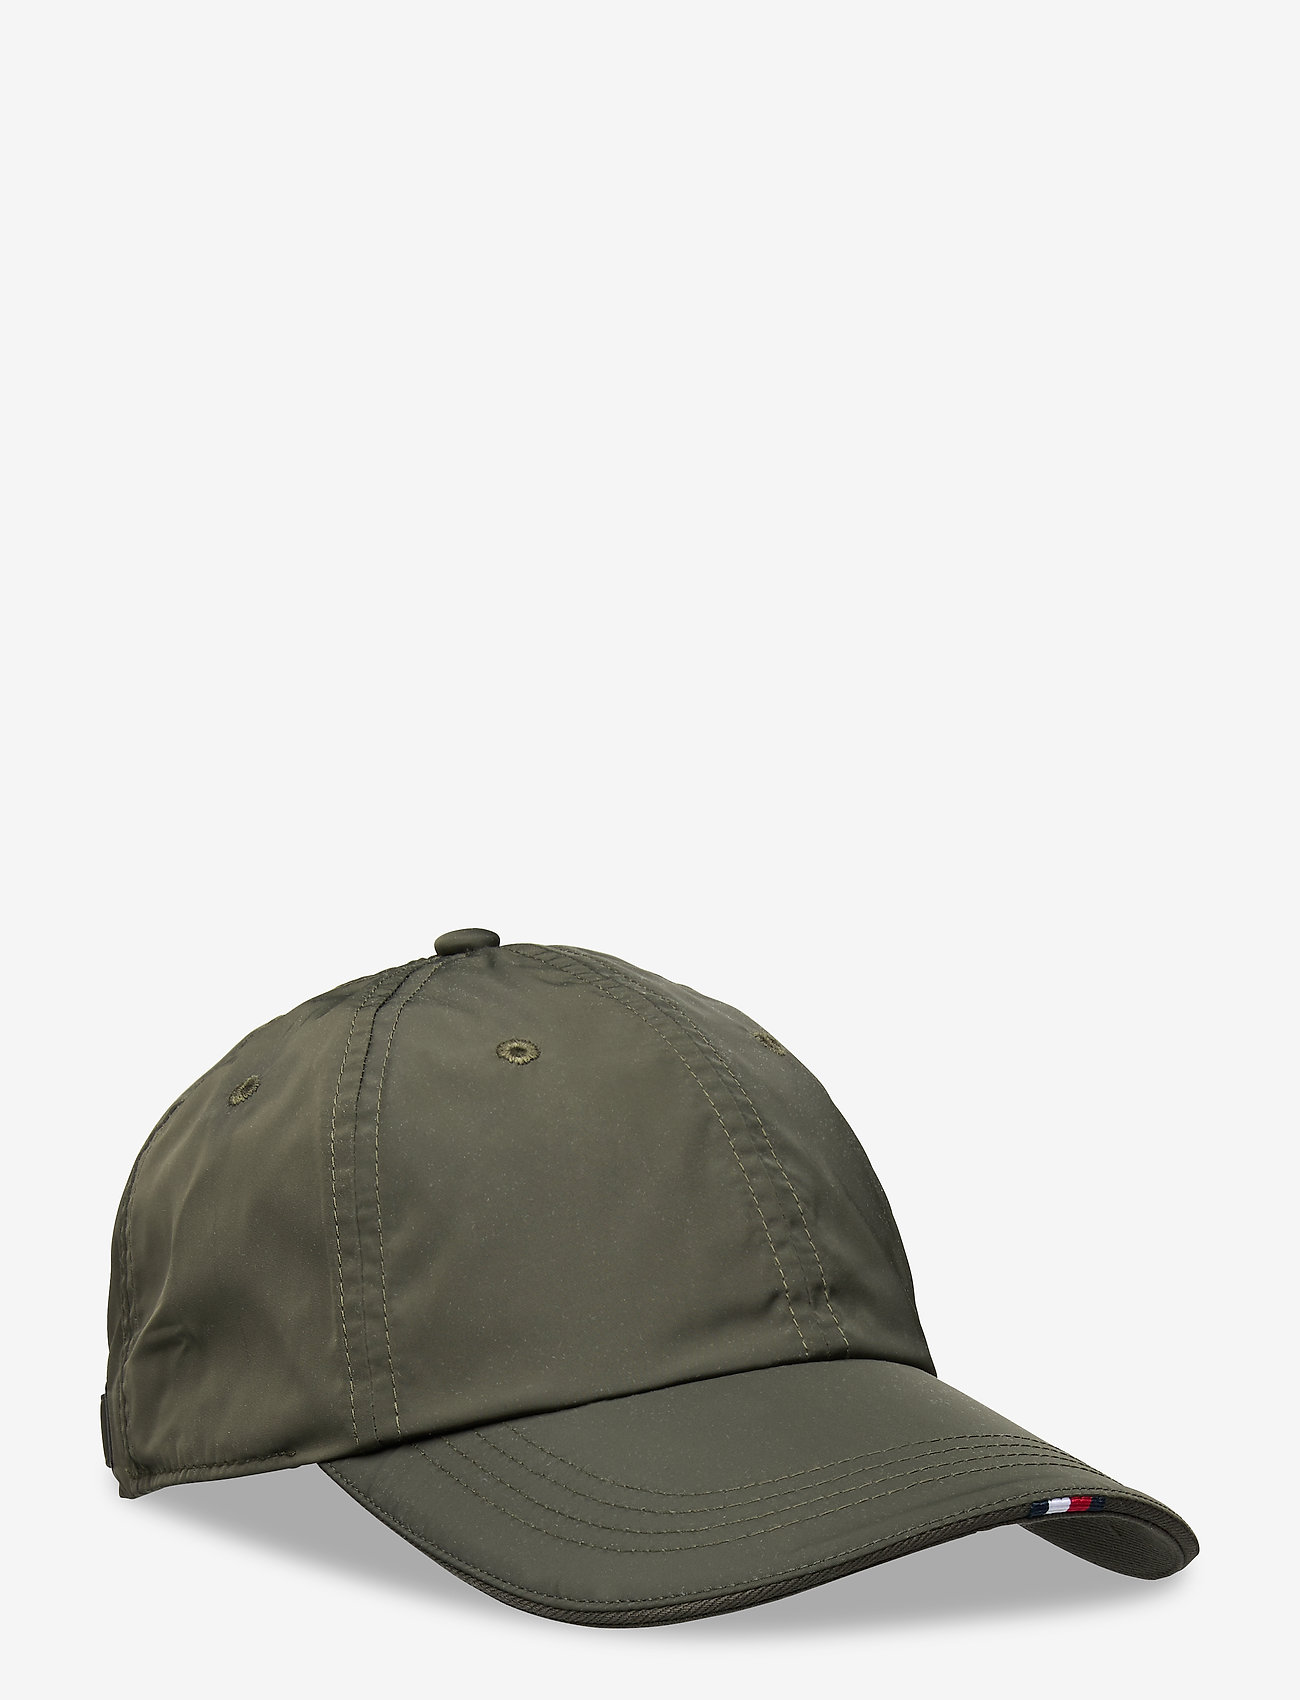 Tommy Hilfiger - TAILORED CAP NYLON - casquettes - grey sage - 0